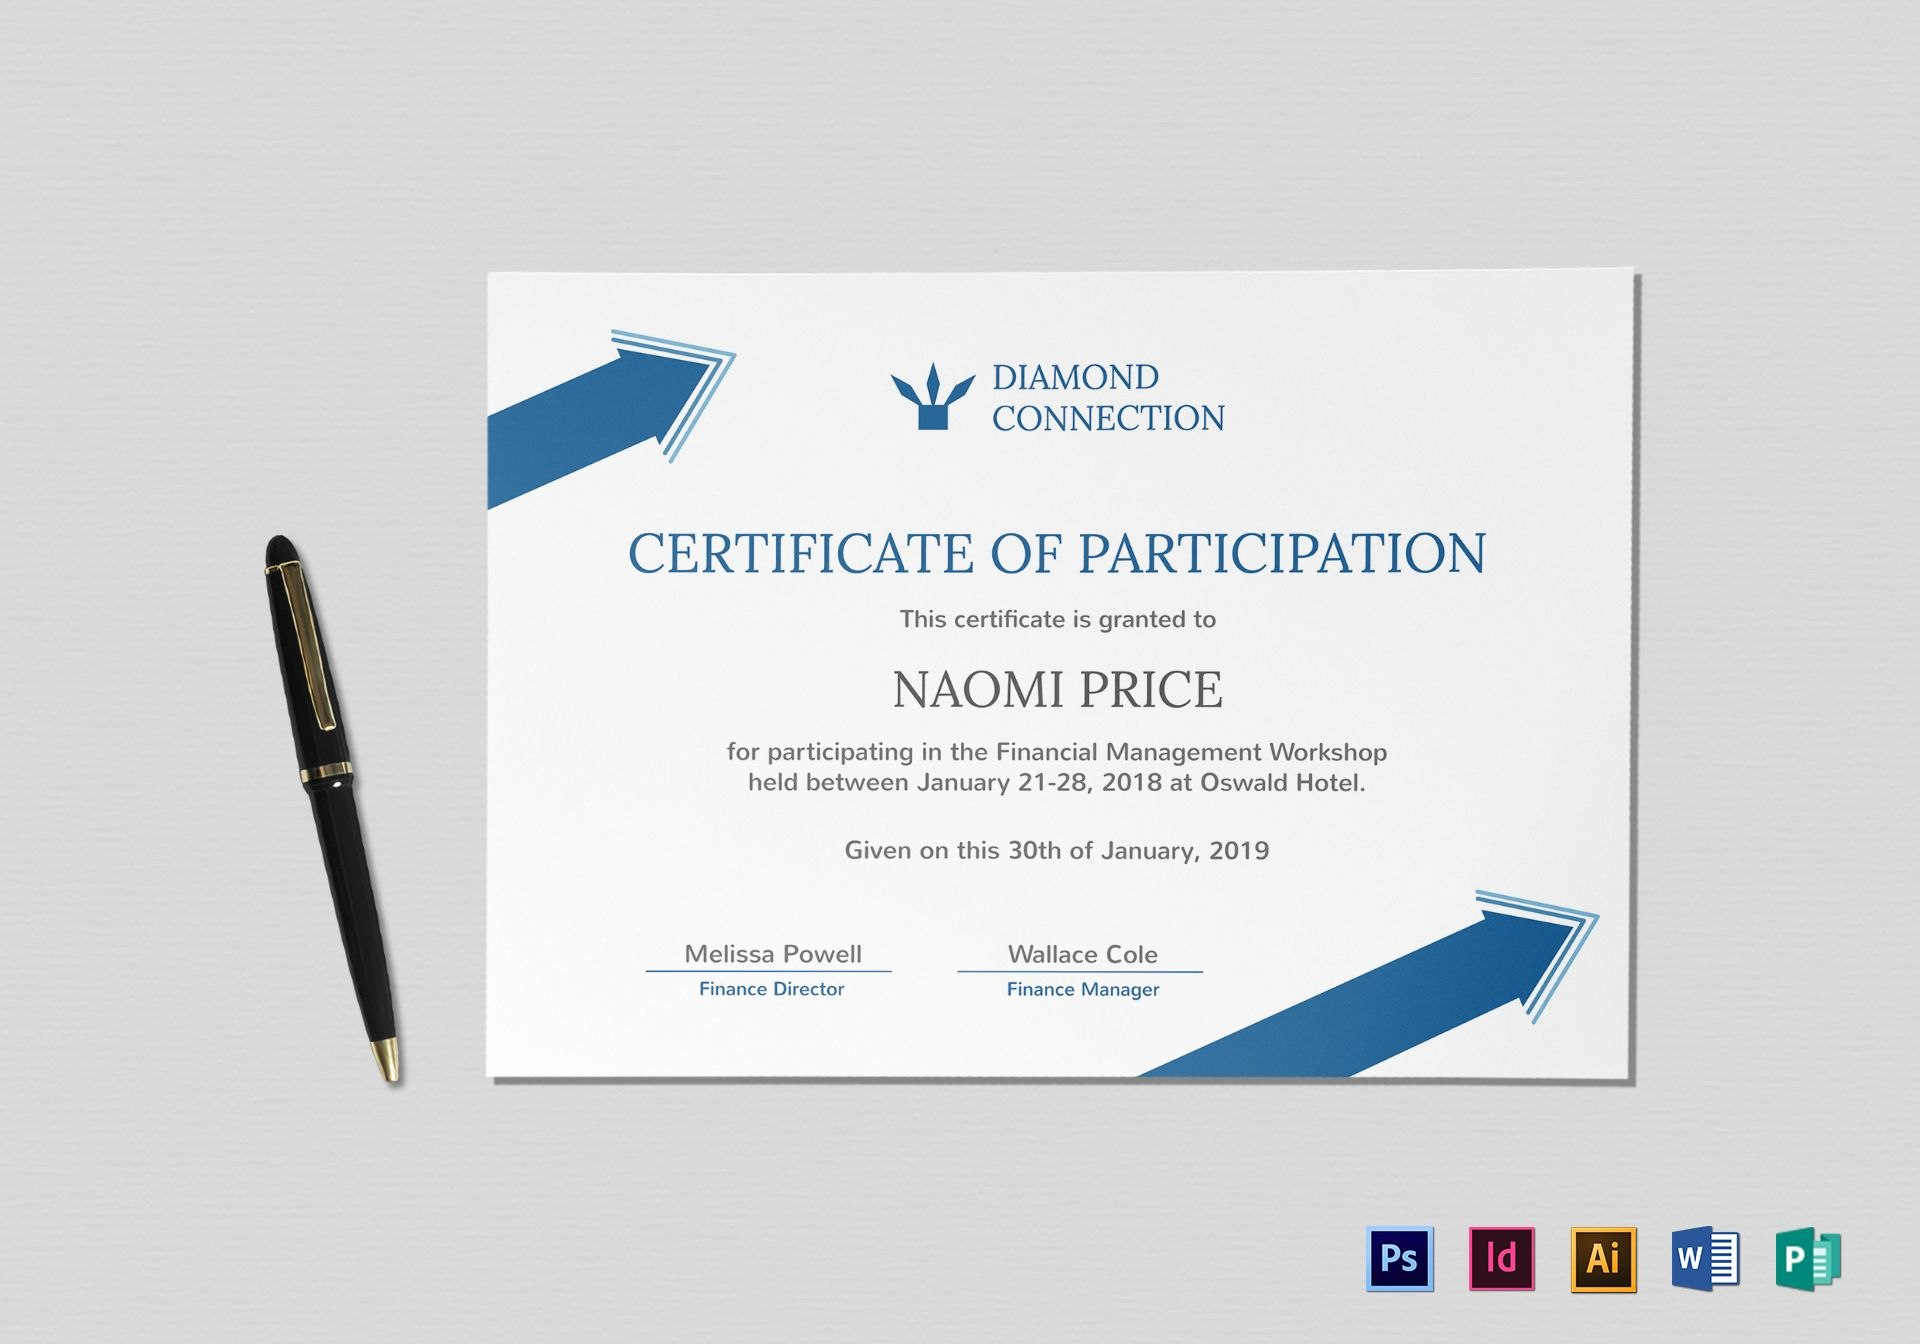 Arrow Style Participation Certificate Design Template In Psd Word Intended For Certificate Of Participation Word Template